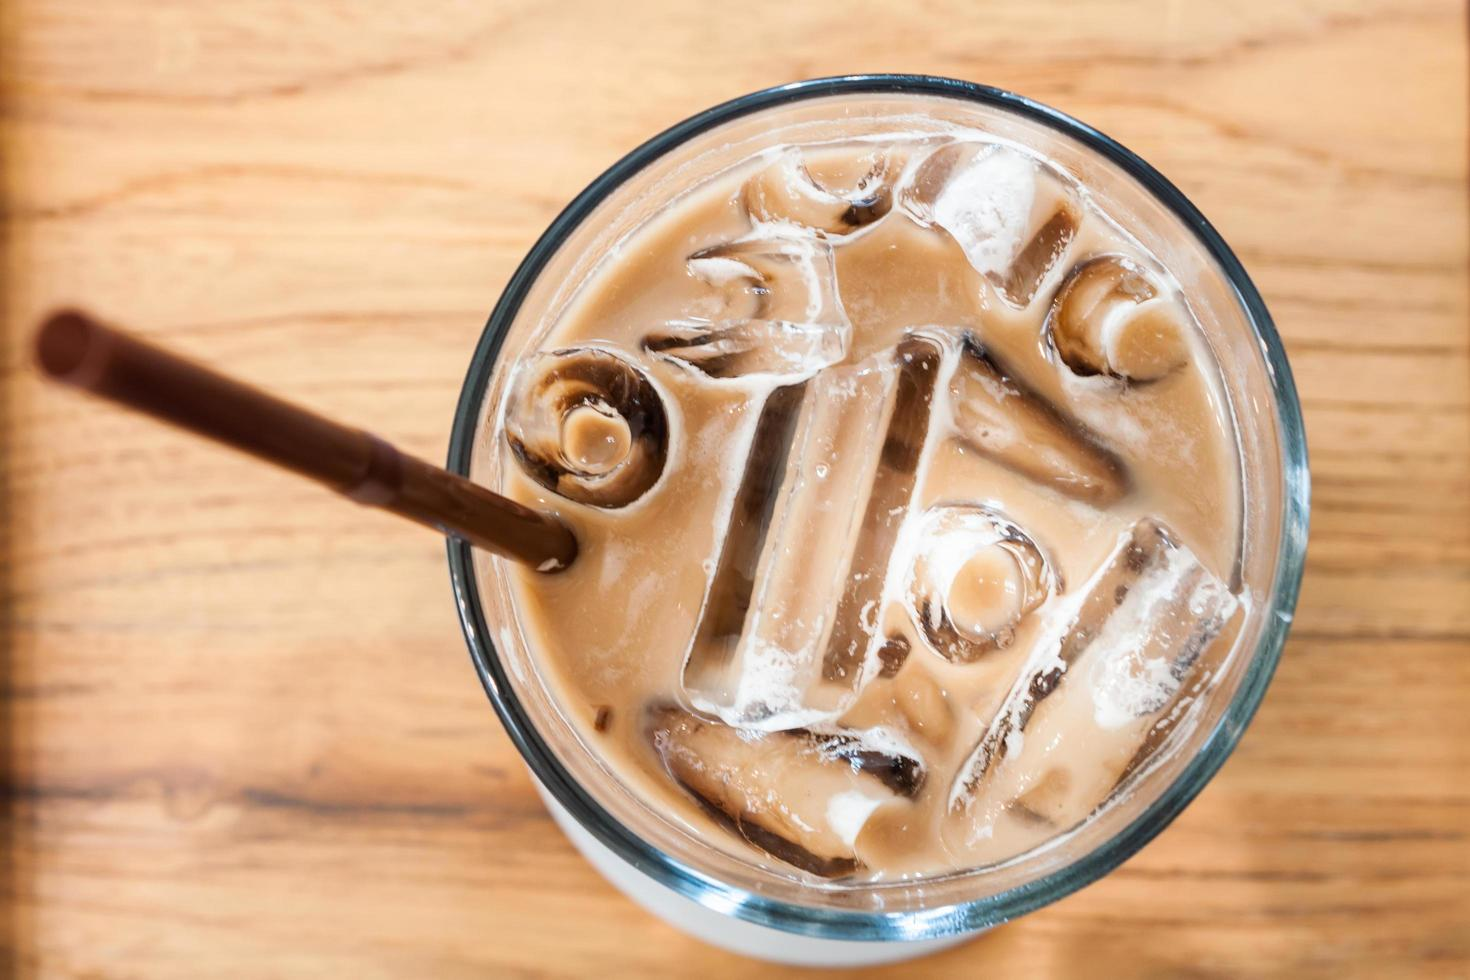 Iced coffee in coffee shop on wooden table photo